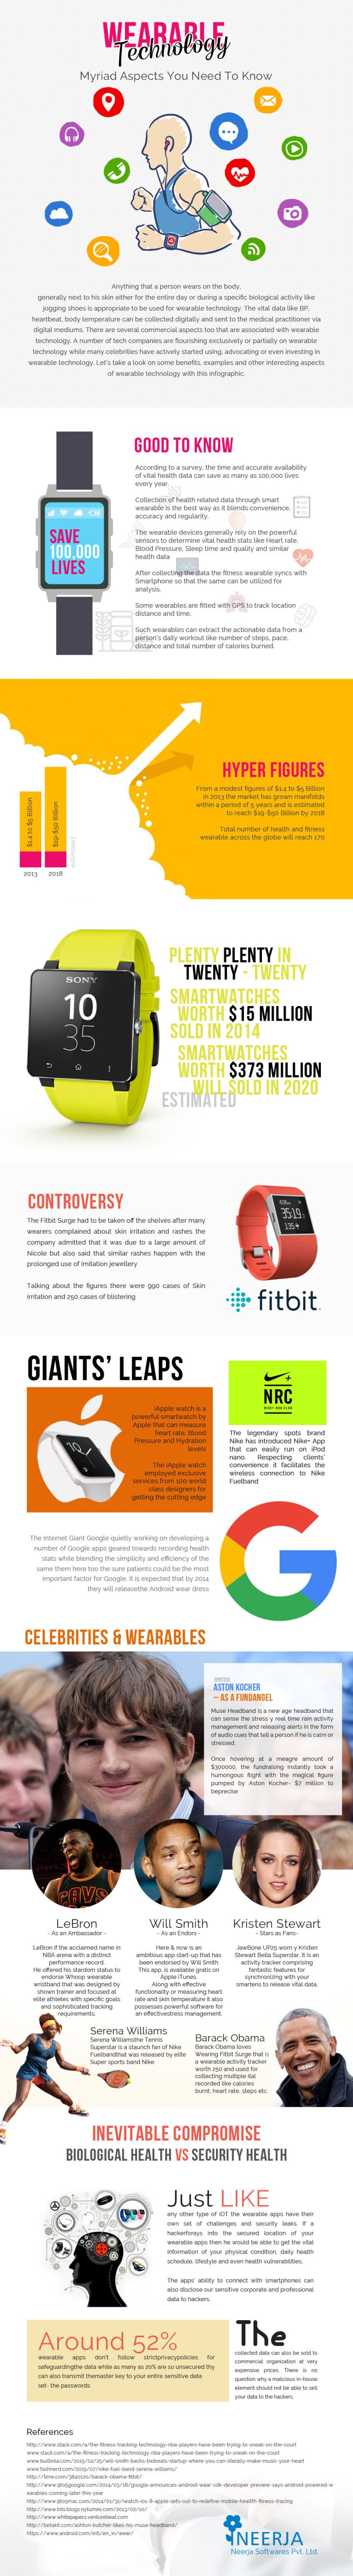 Wearable technology - infographic